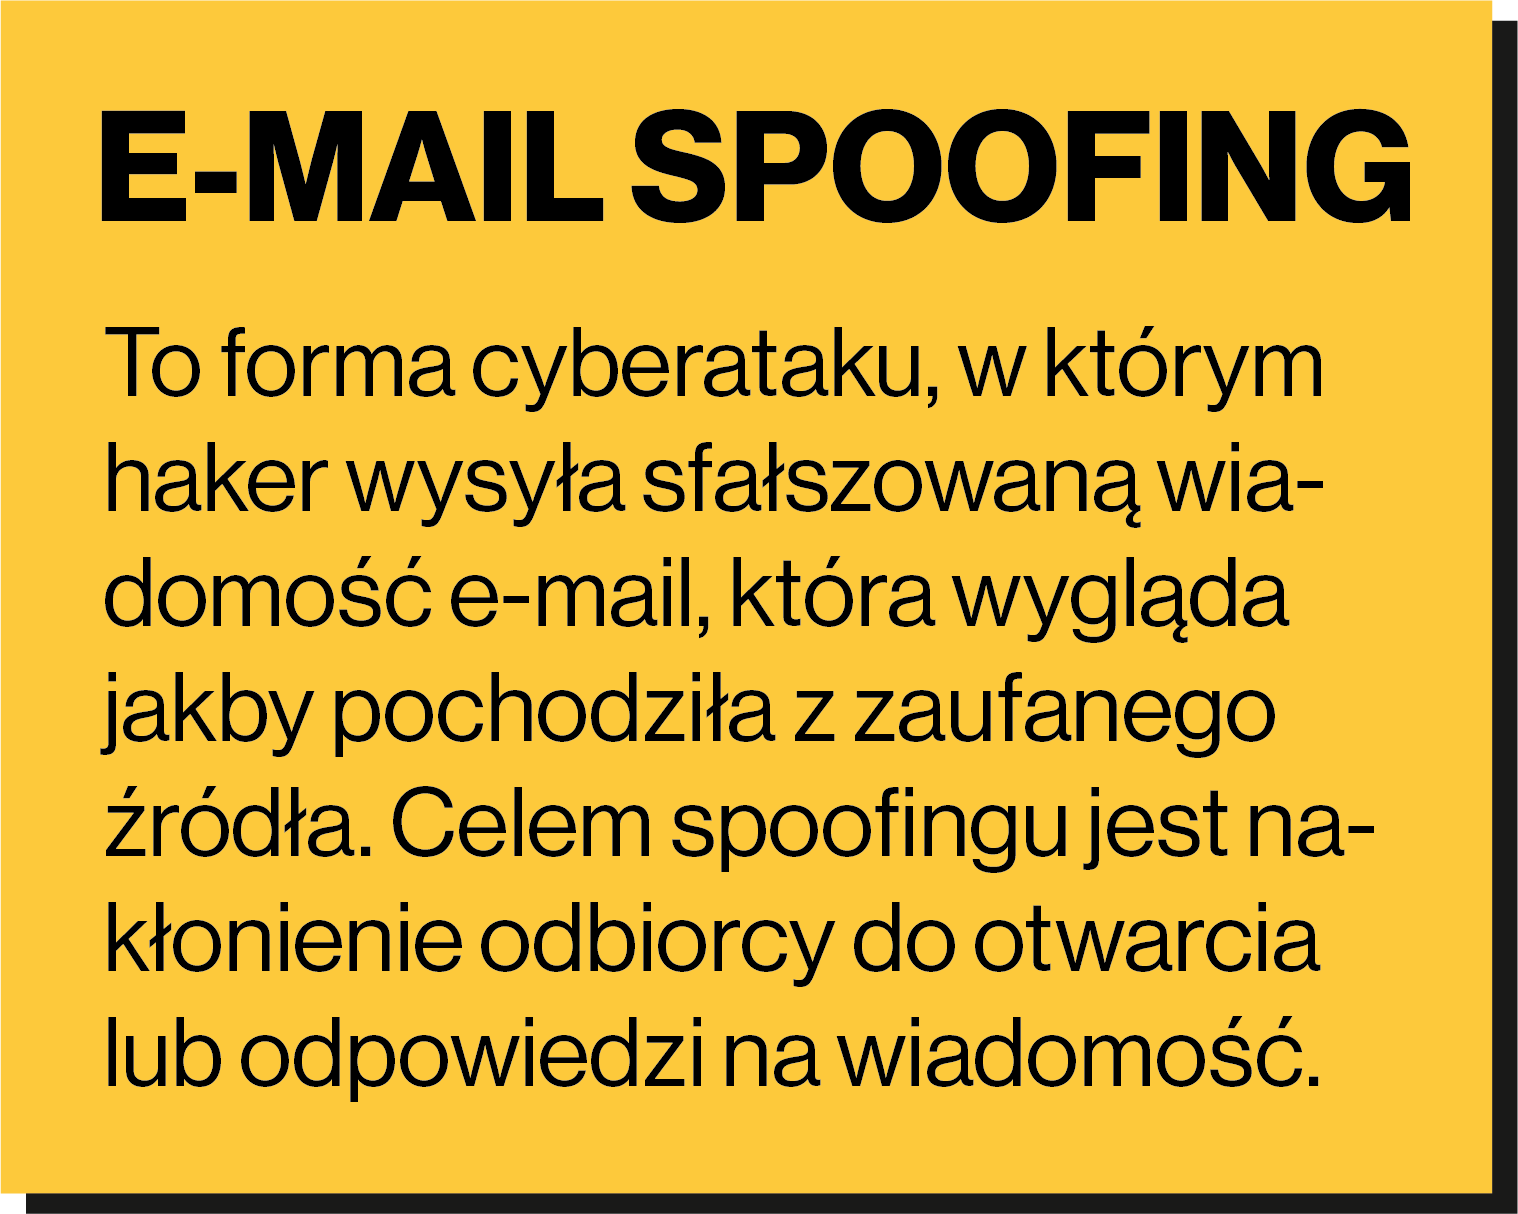 e-mail spoofing